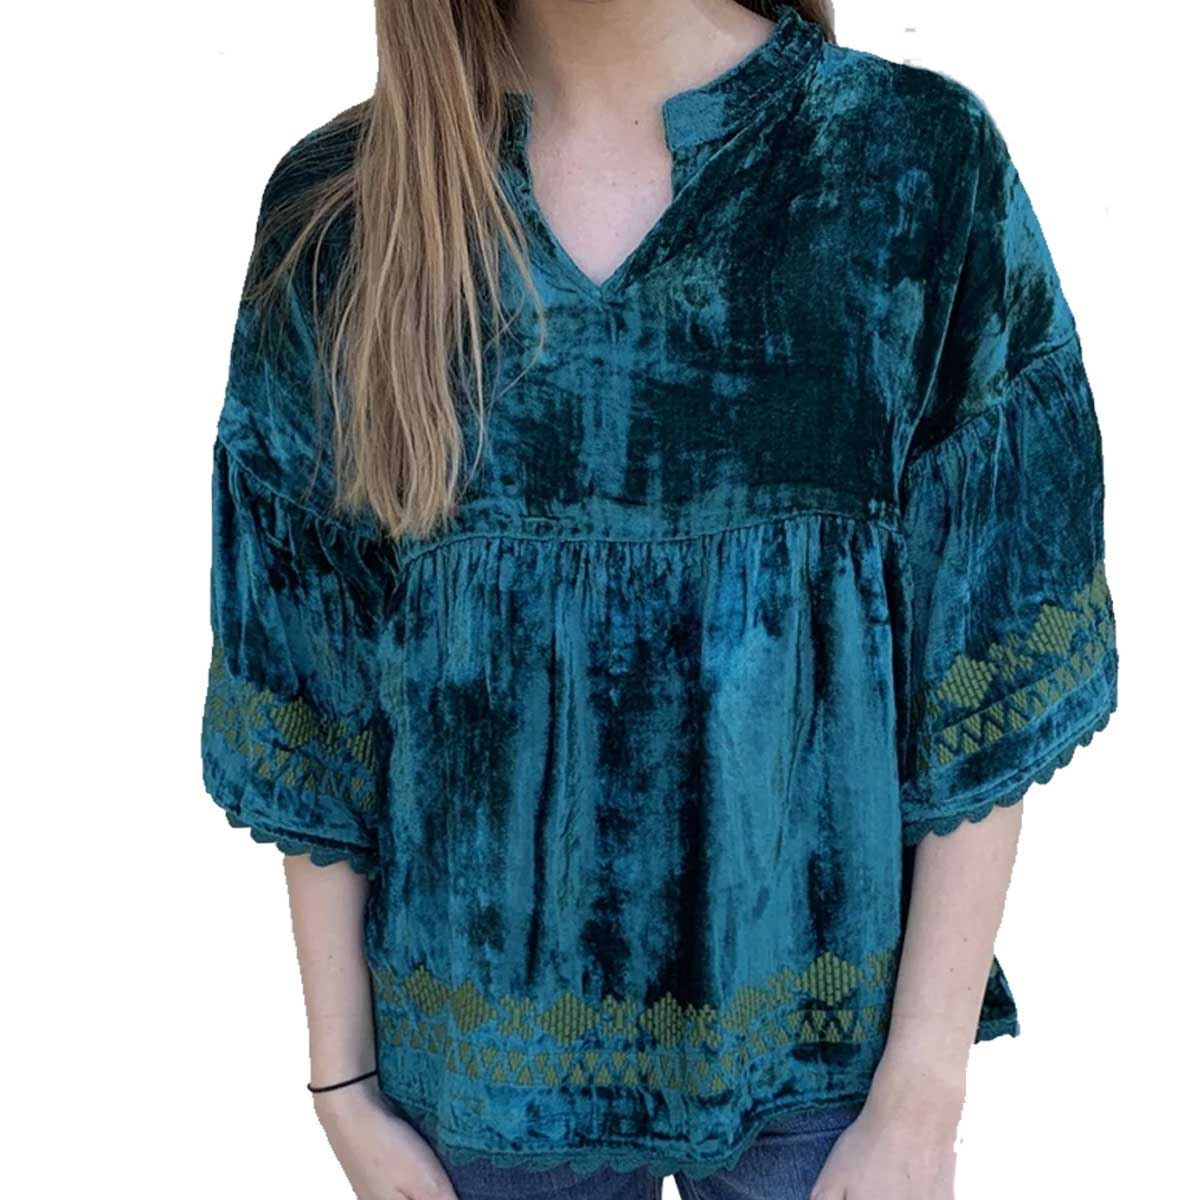 Ivy Jane Velma Popover Bordered Velvet Top - Teal